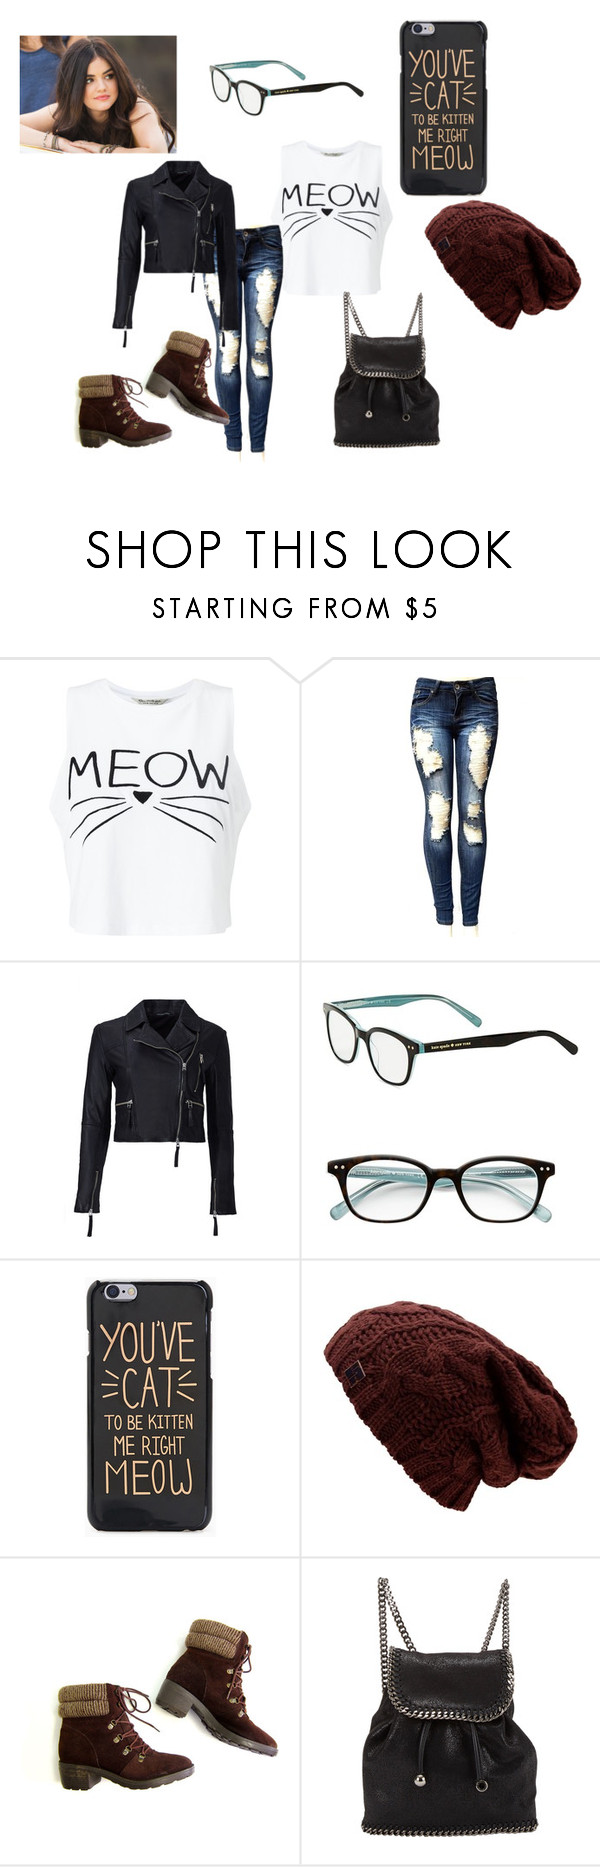 """Untitled #221"" by arribun on Polyvore featuring Miss Selfridge, Marissa Webb, Kate Spade and STELLA McCARTNEY"